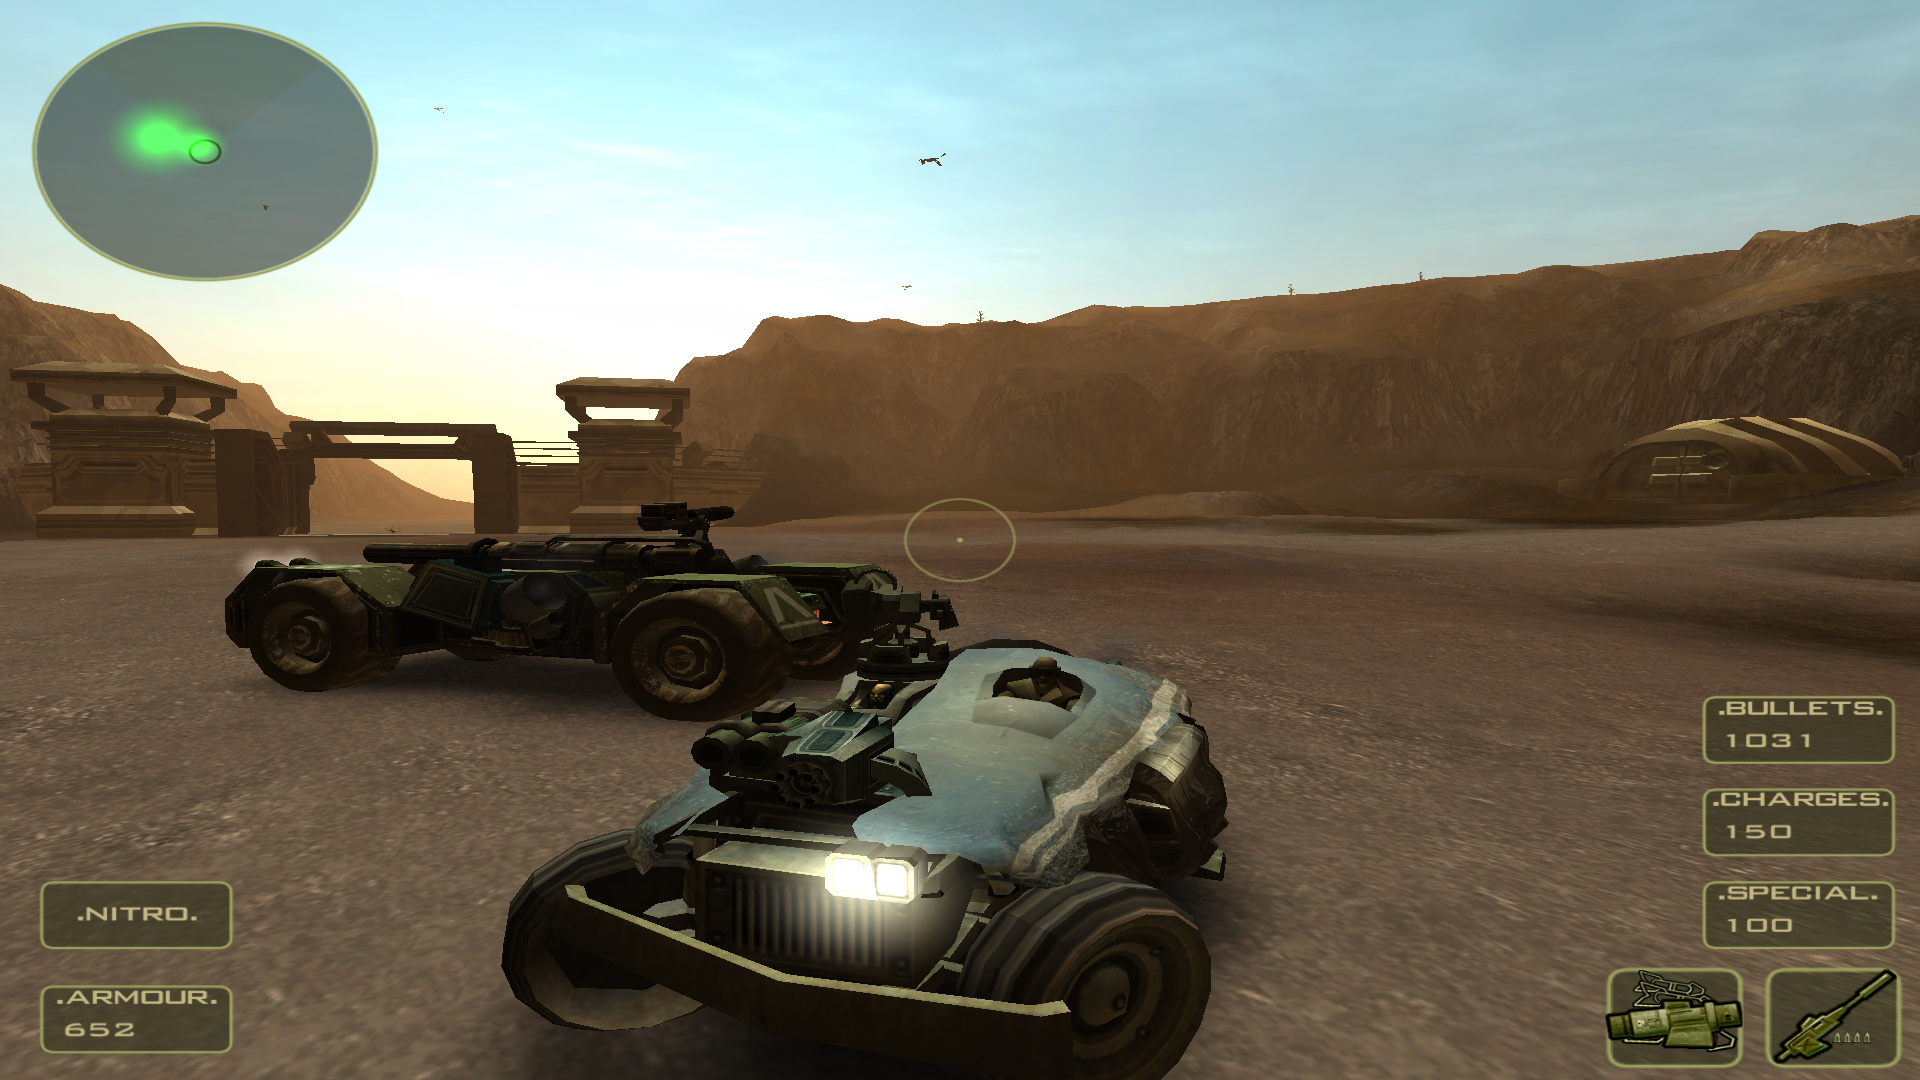 Bandits: Phoenix Rising Windows A new car! More weapon slots, armour and fun.